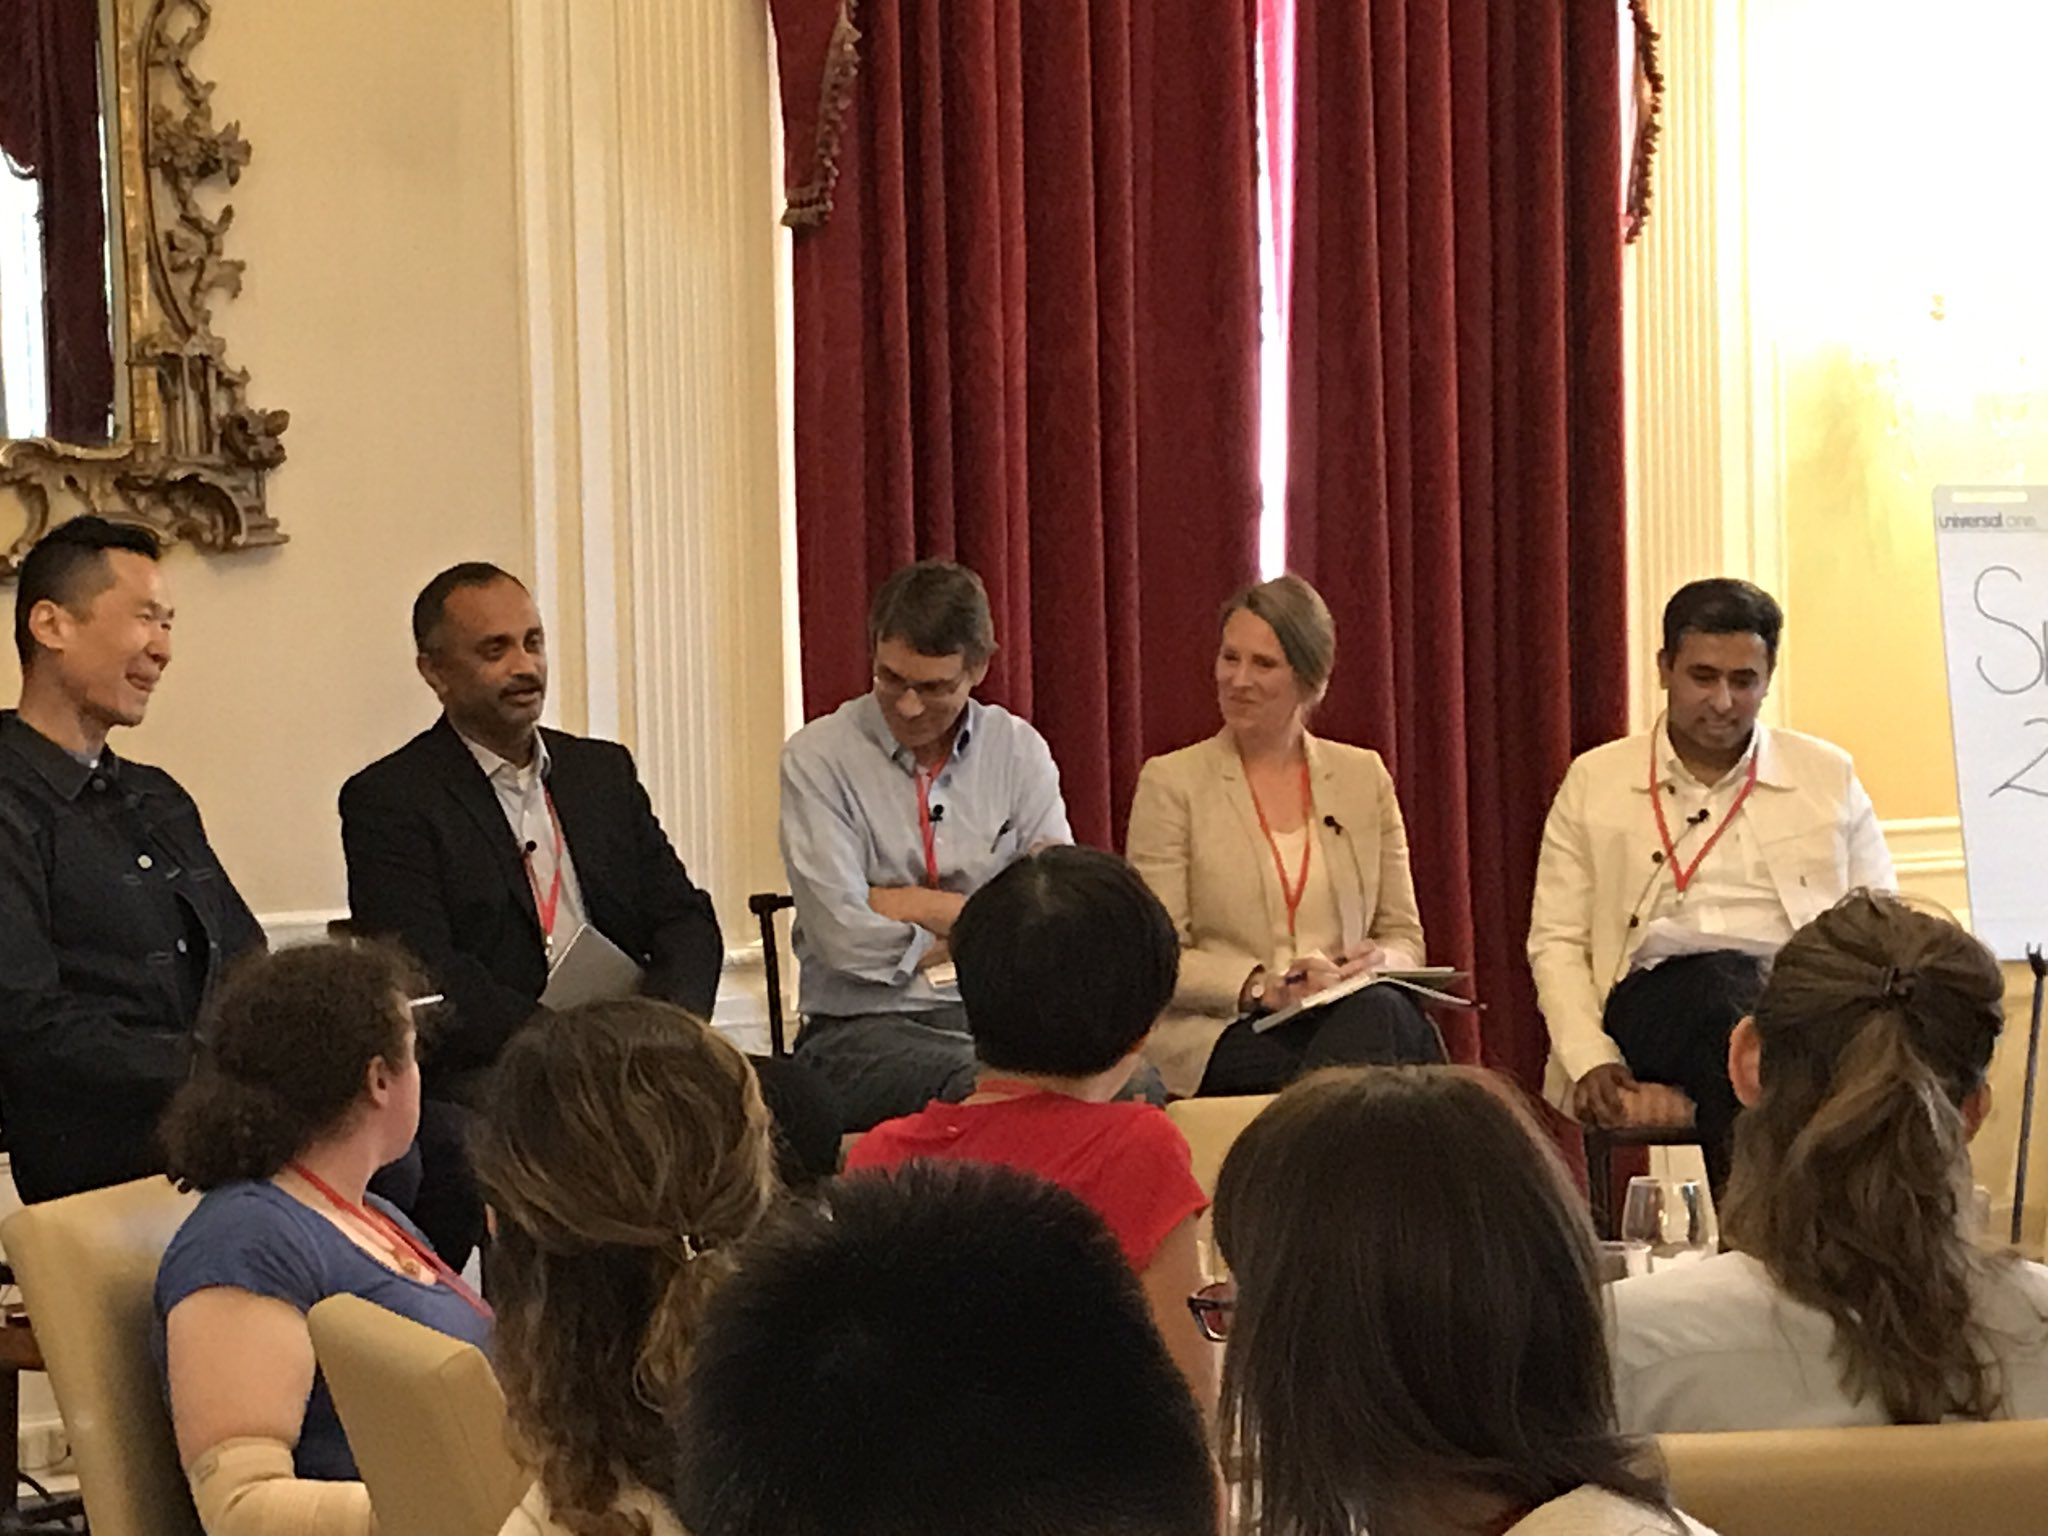 @flybyboy leads session on future of #WorkerWellBeing #SHINESummit @SHINEHarvard @anniesoconnor @LeviStraussCo https://t.co/XUdWXPdi3Q